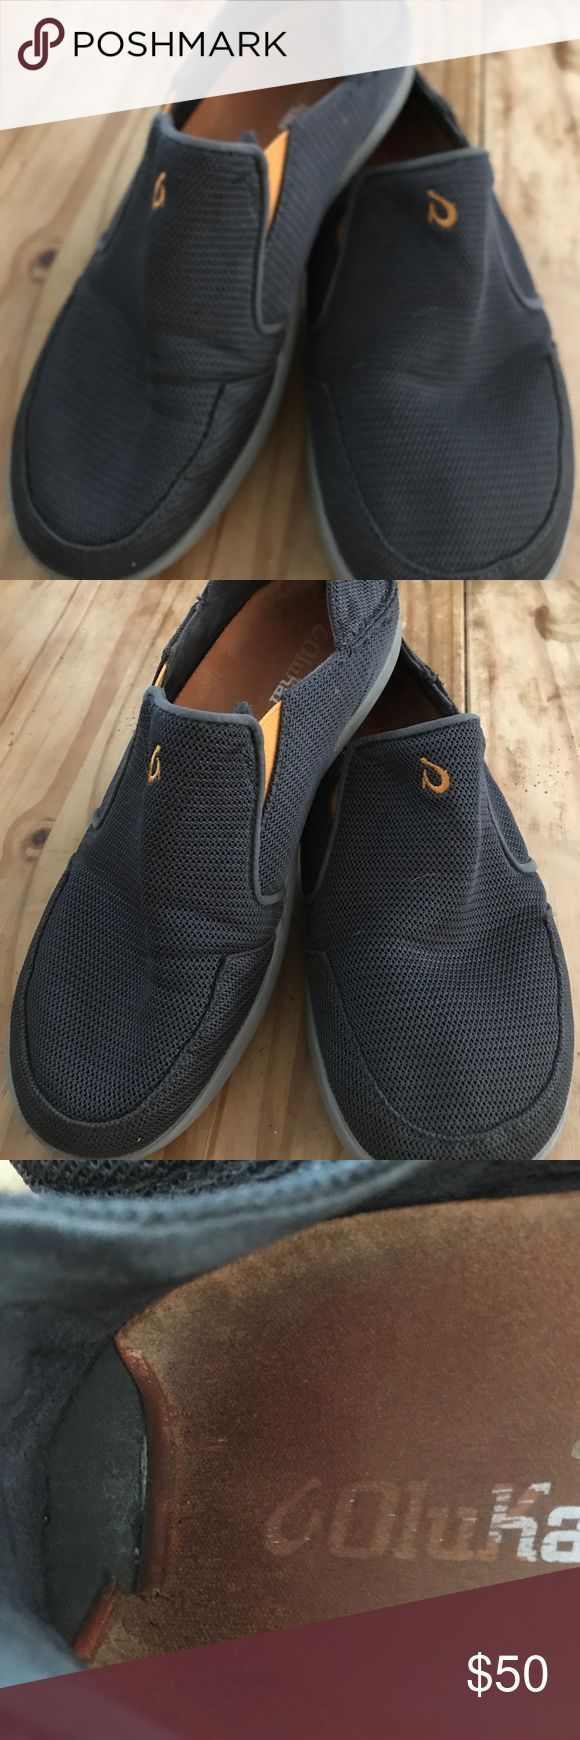 Olukai sandals size 9.5 Great quality shoes that has some used and inside has some trace of dirt and insole has rolled material but this doesn't affect the integrity of the shoes. OluKai Shoes Loafers & Slip-Ons